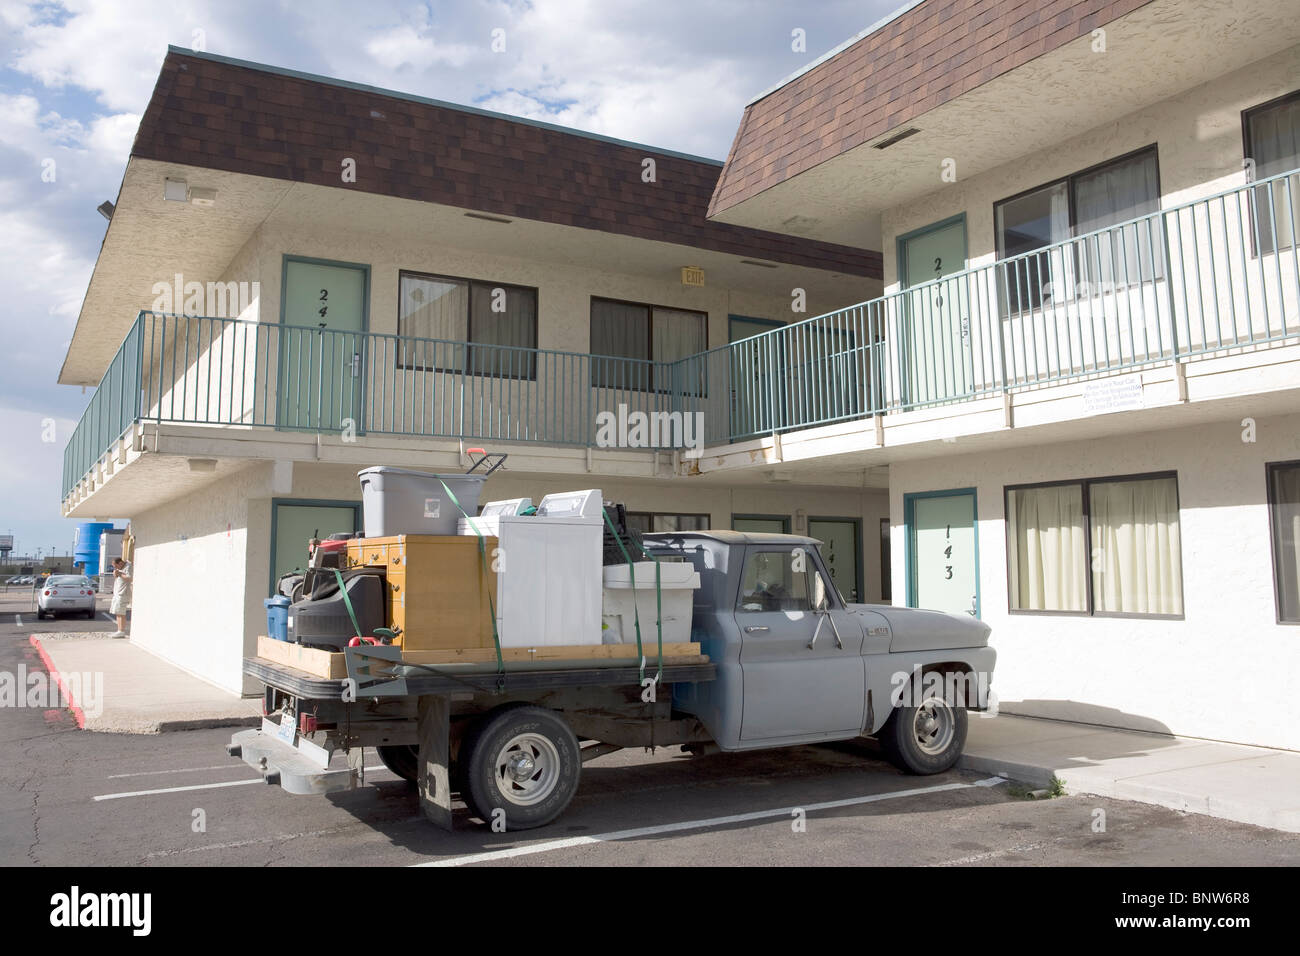 Old pickup truck loaded with household appliances and personal effects, park in front of a motel in Nebraska. - Stock Image